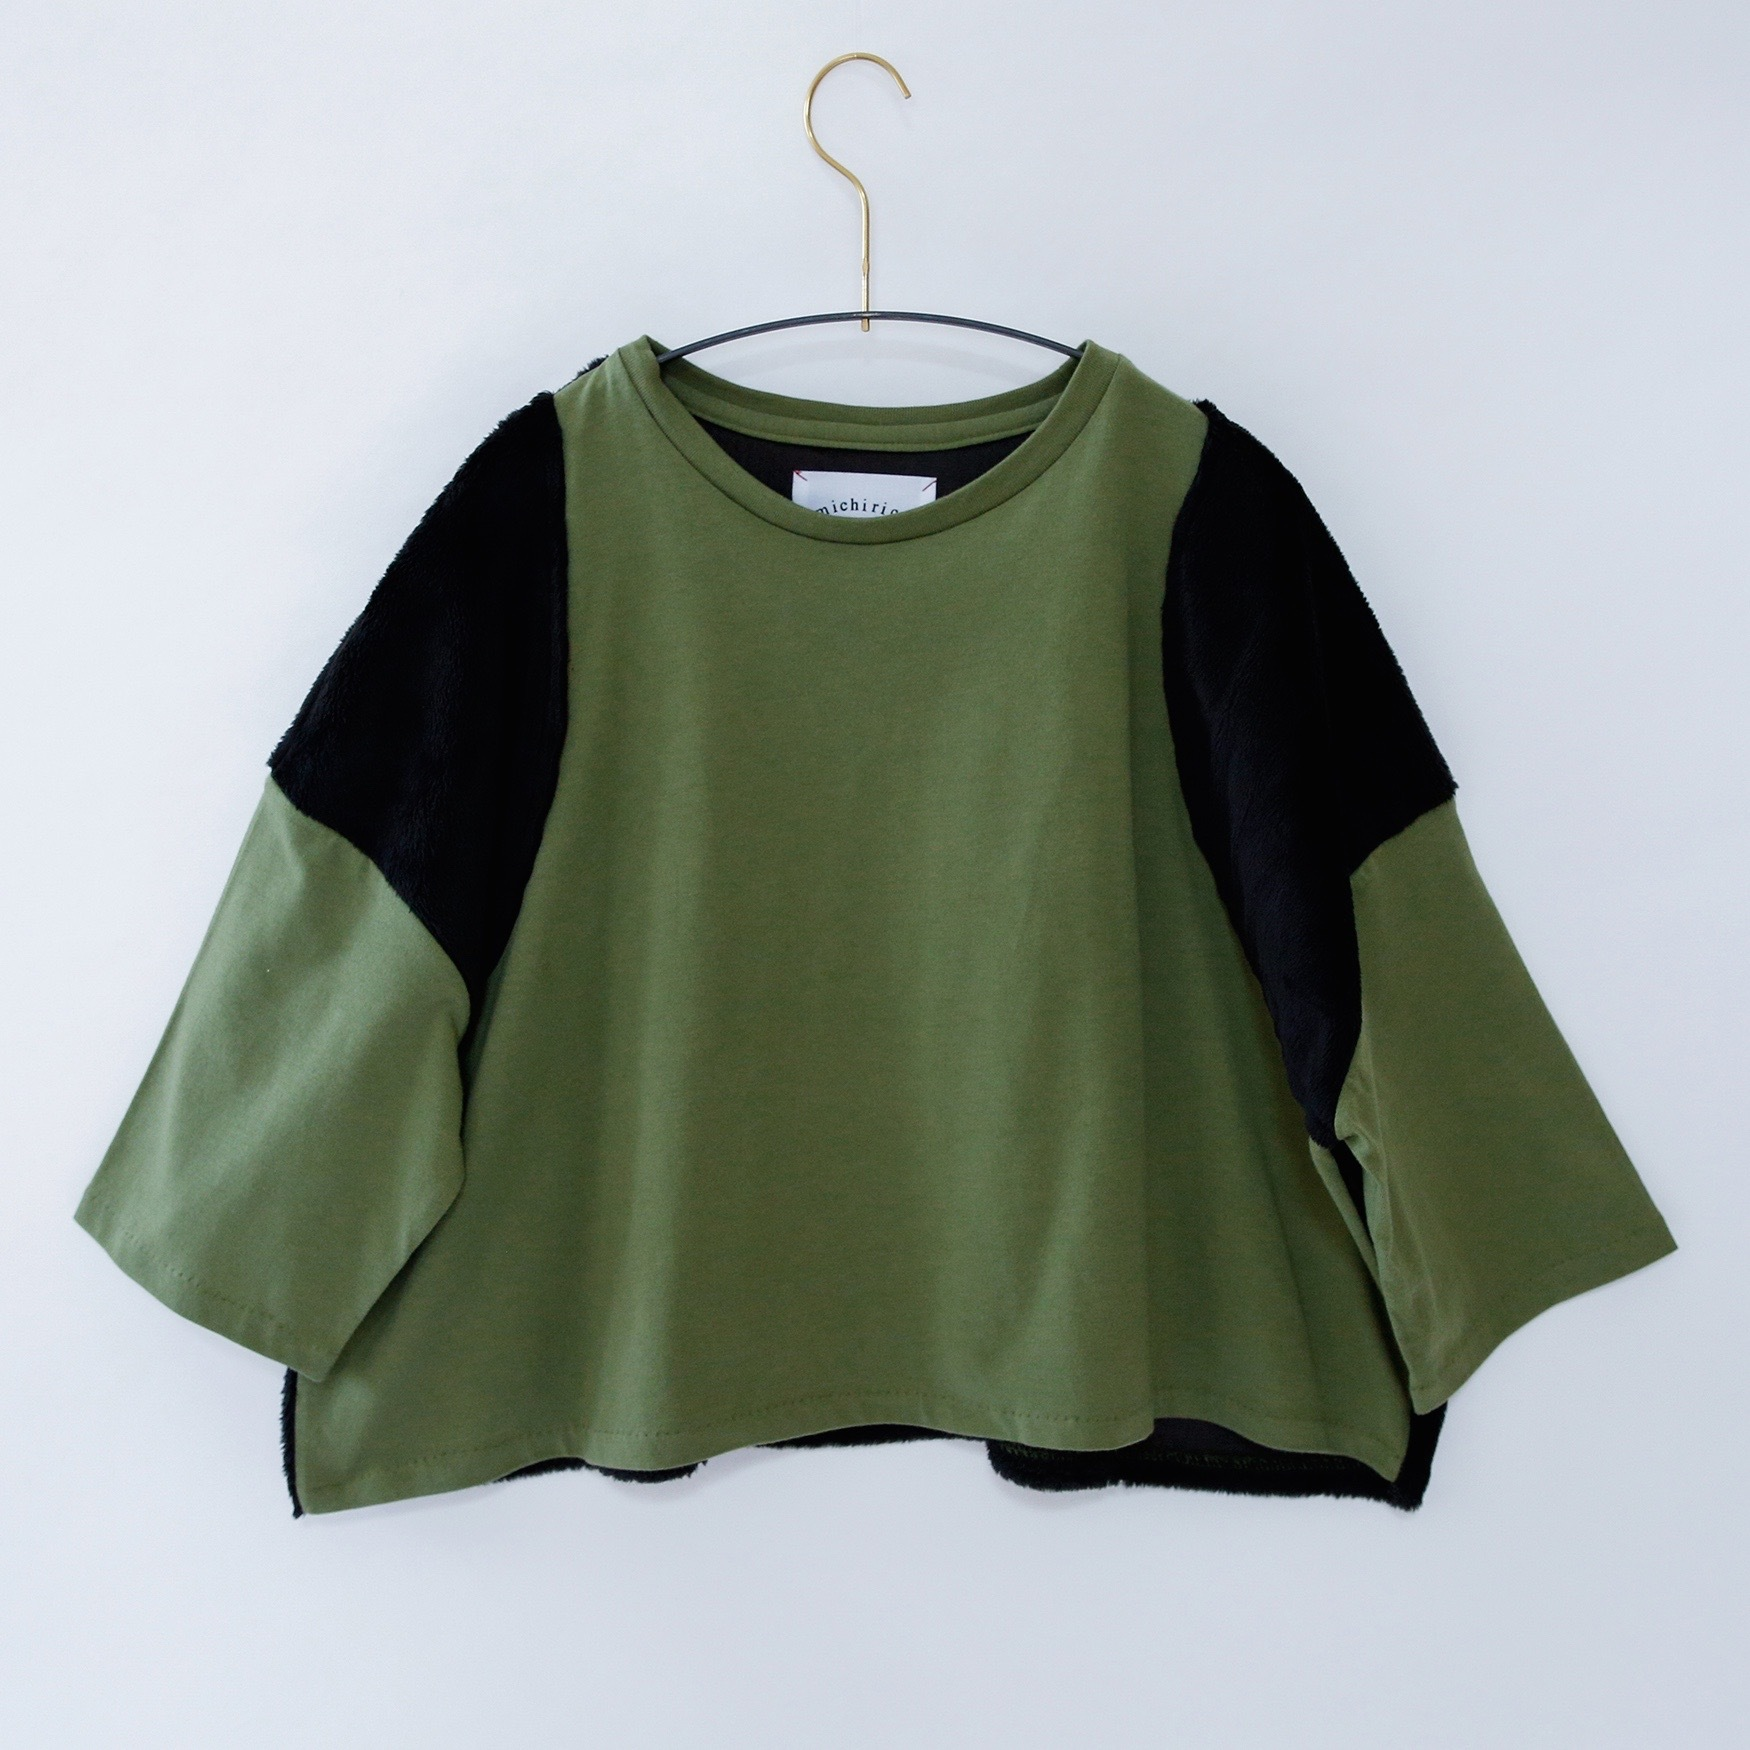 《michirico 2020AW》Boa tops / military green / S・M